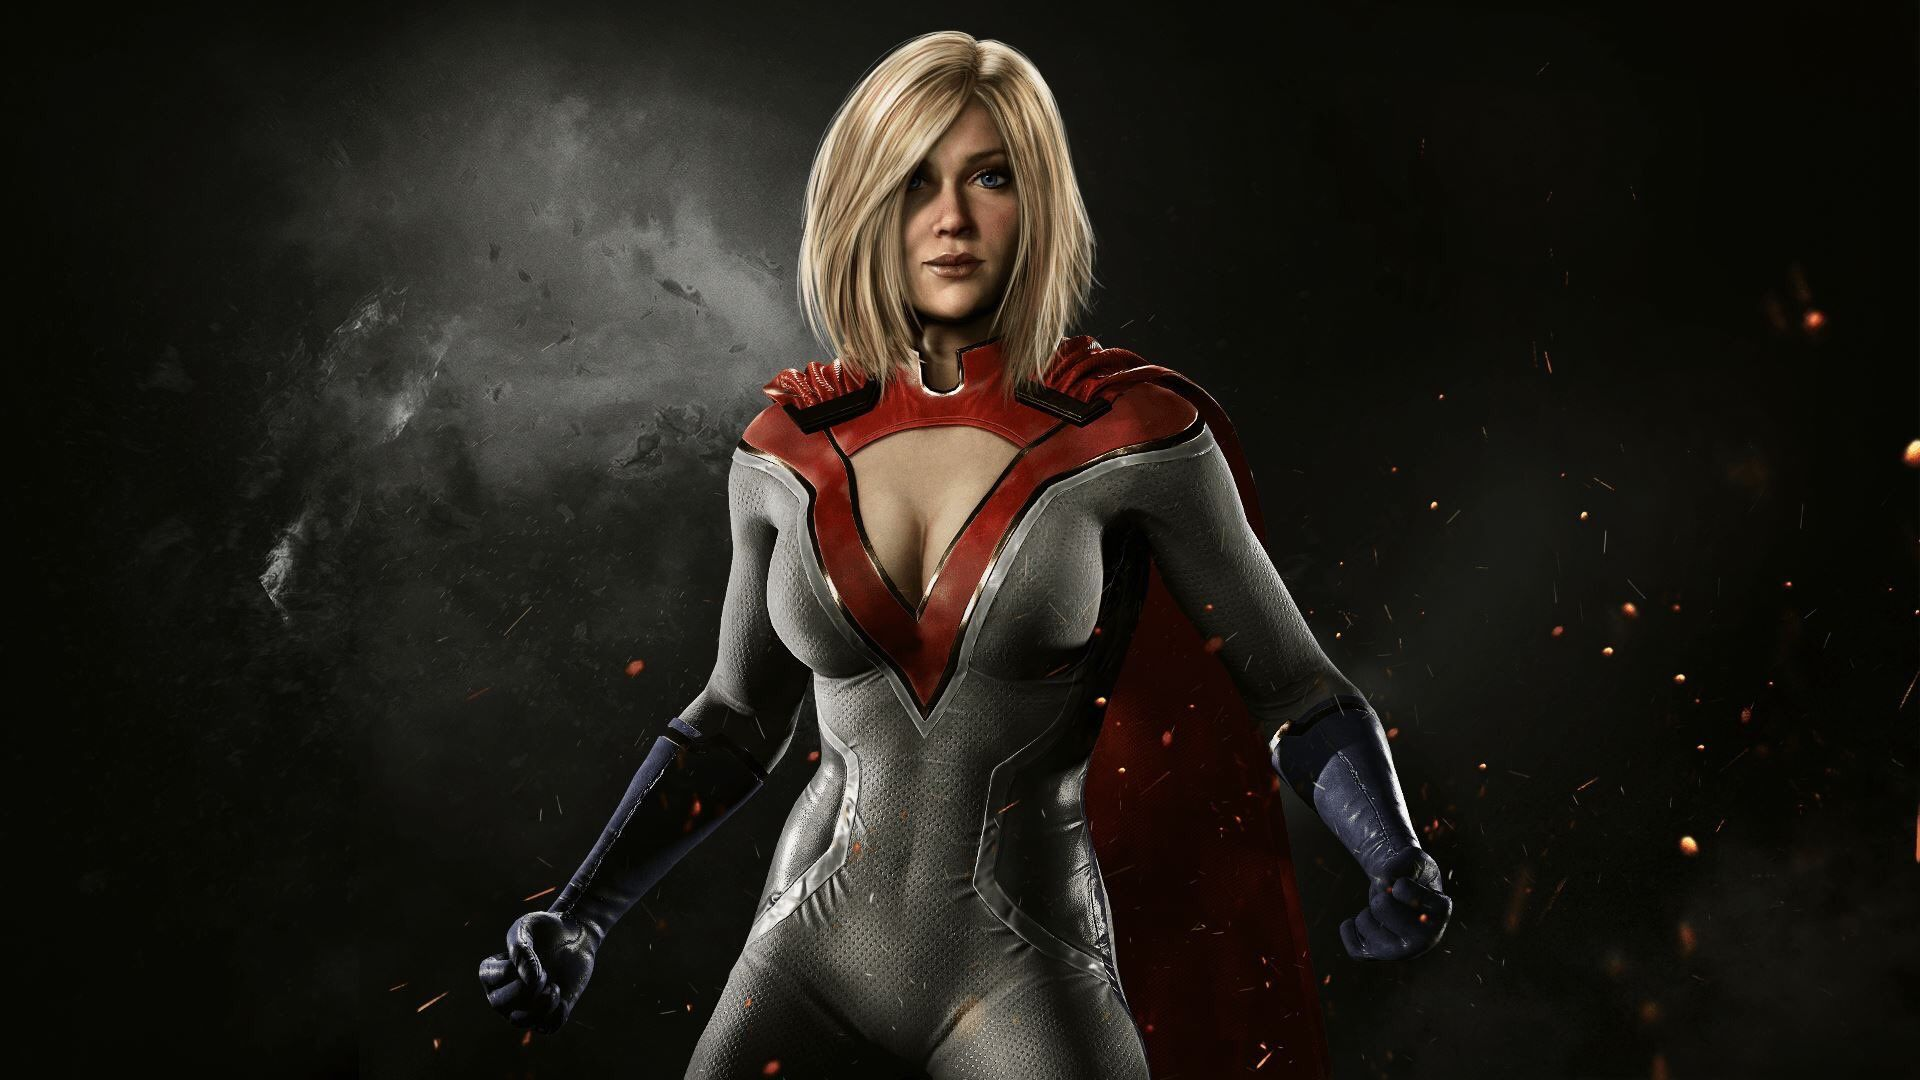 Injustice 2 4k Wallpapers Top Free Injustice 2 4k Backgrounds